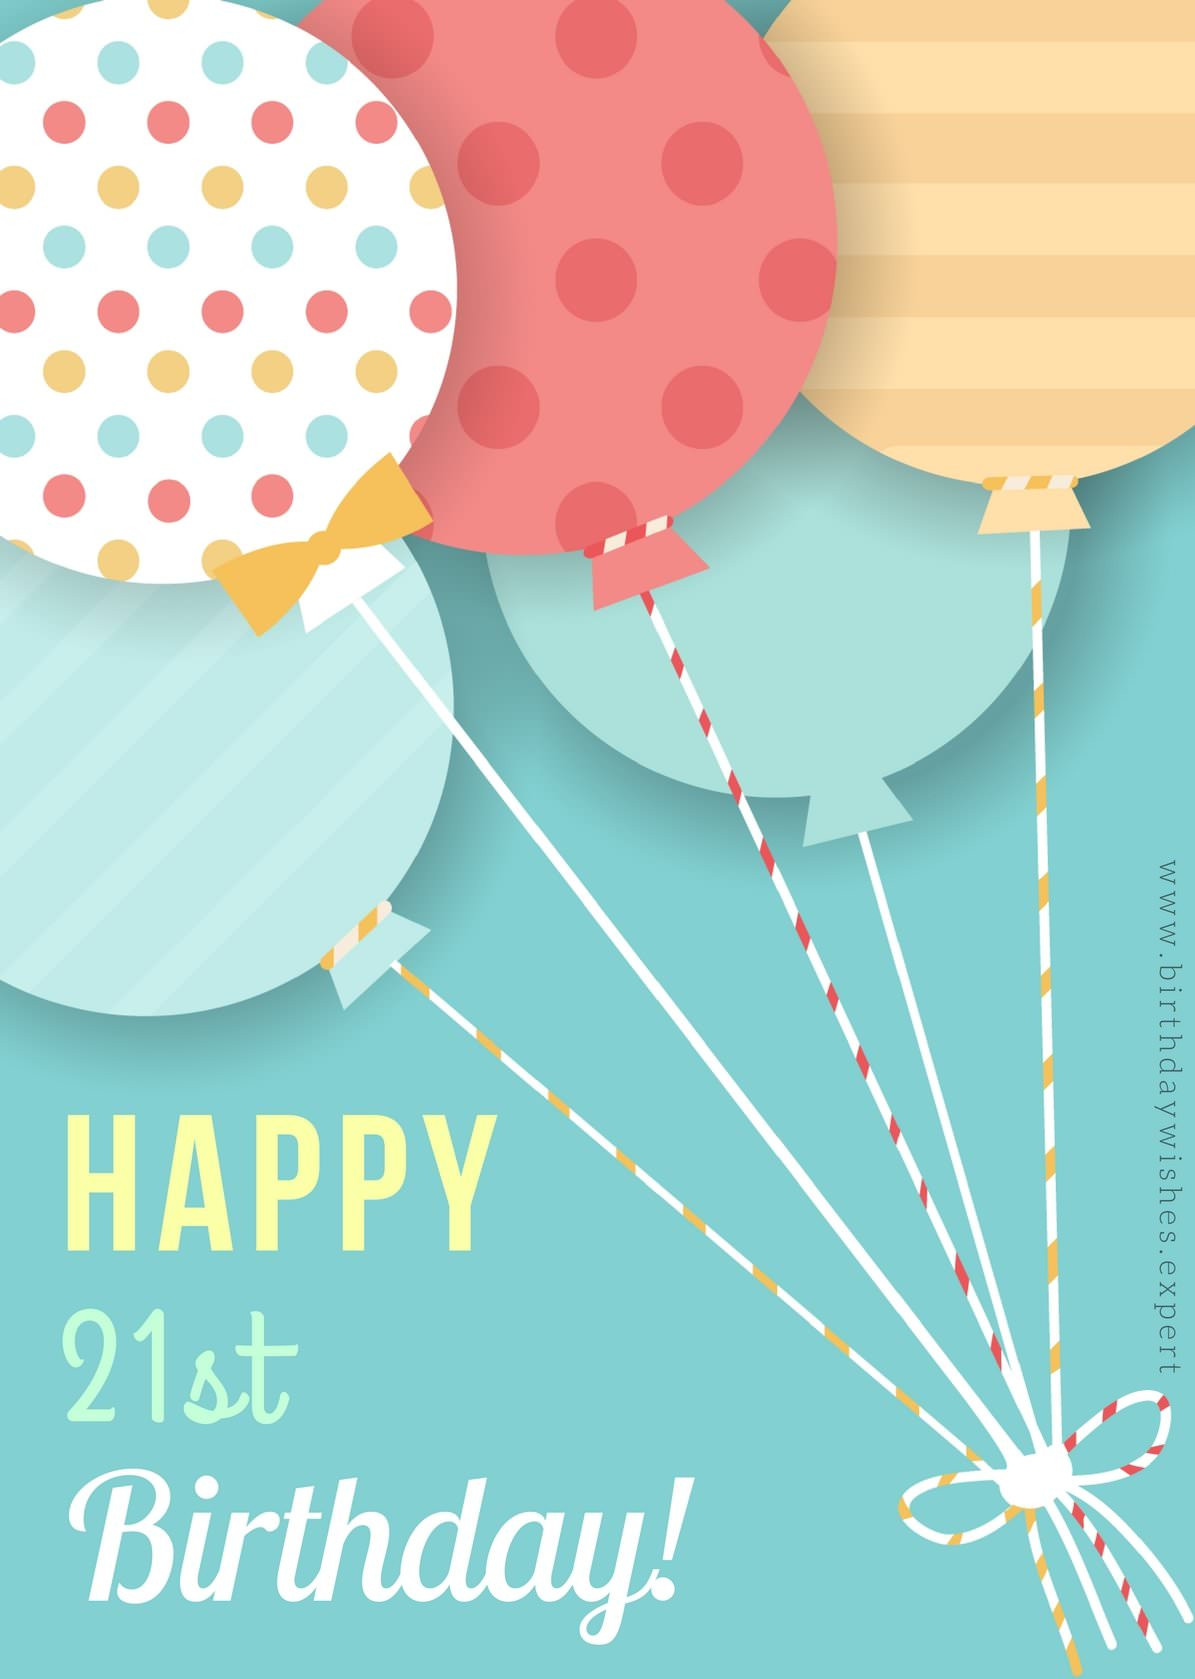 Best ideas about 21st Birthday Wishes . Save or Pin Birthday Wishes for 21st Birthday Now.